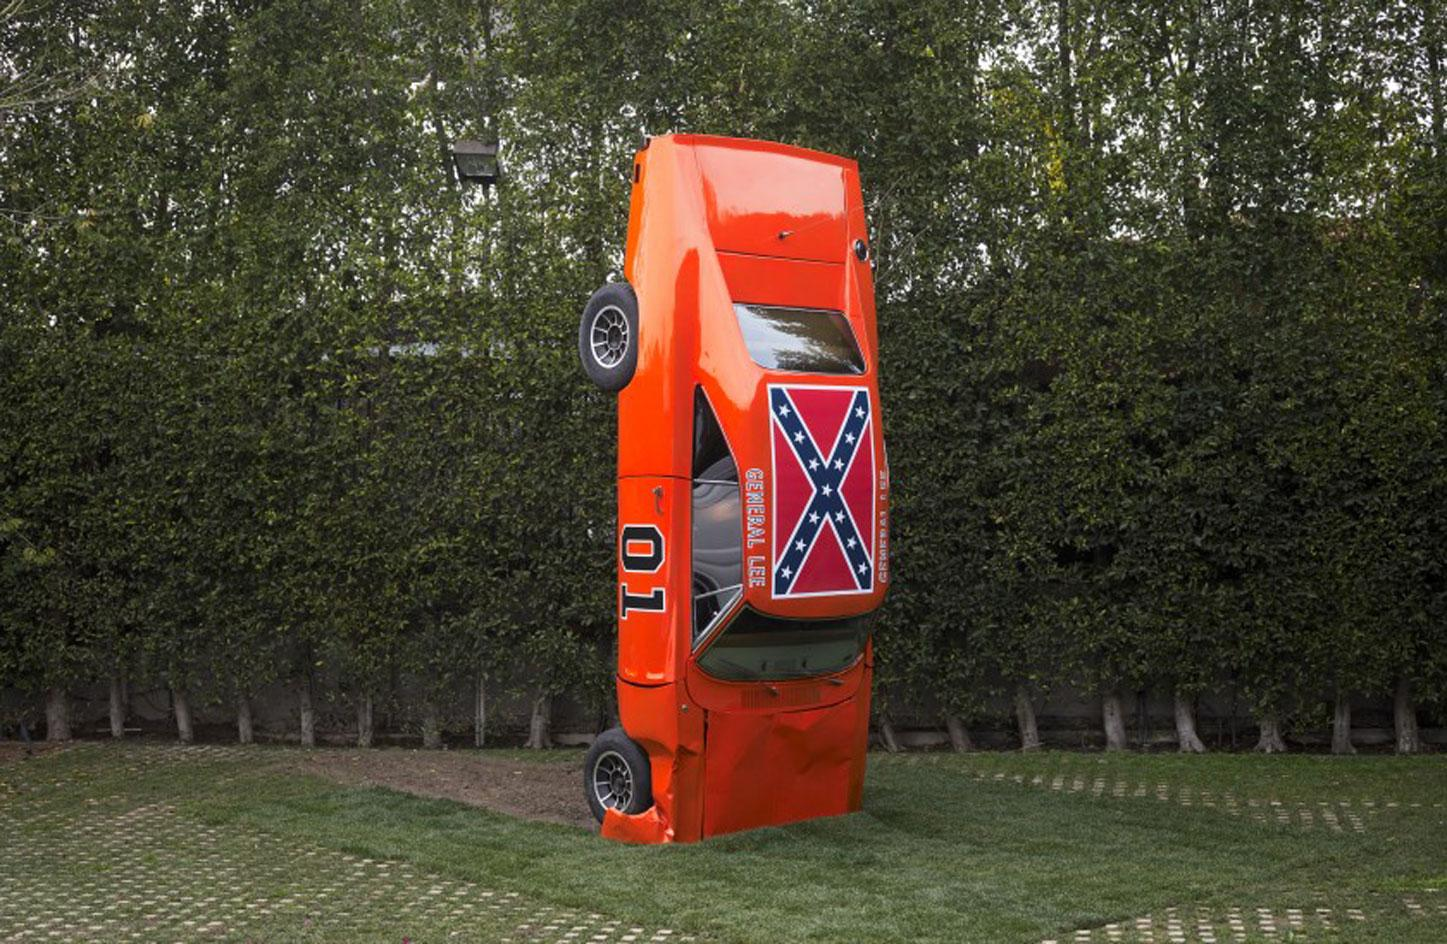 Hank Willis Thomas, A Suspension of Hostilities, 2019. A red car nose down featuring the Confederate Flag on its roof